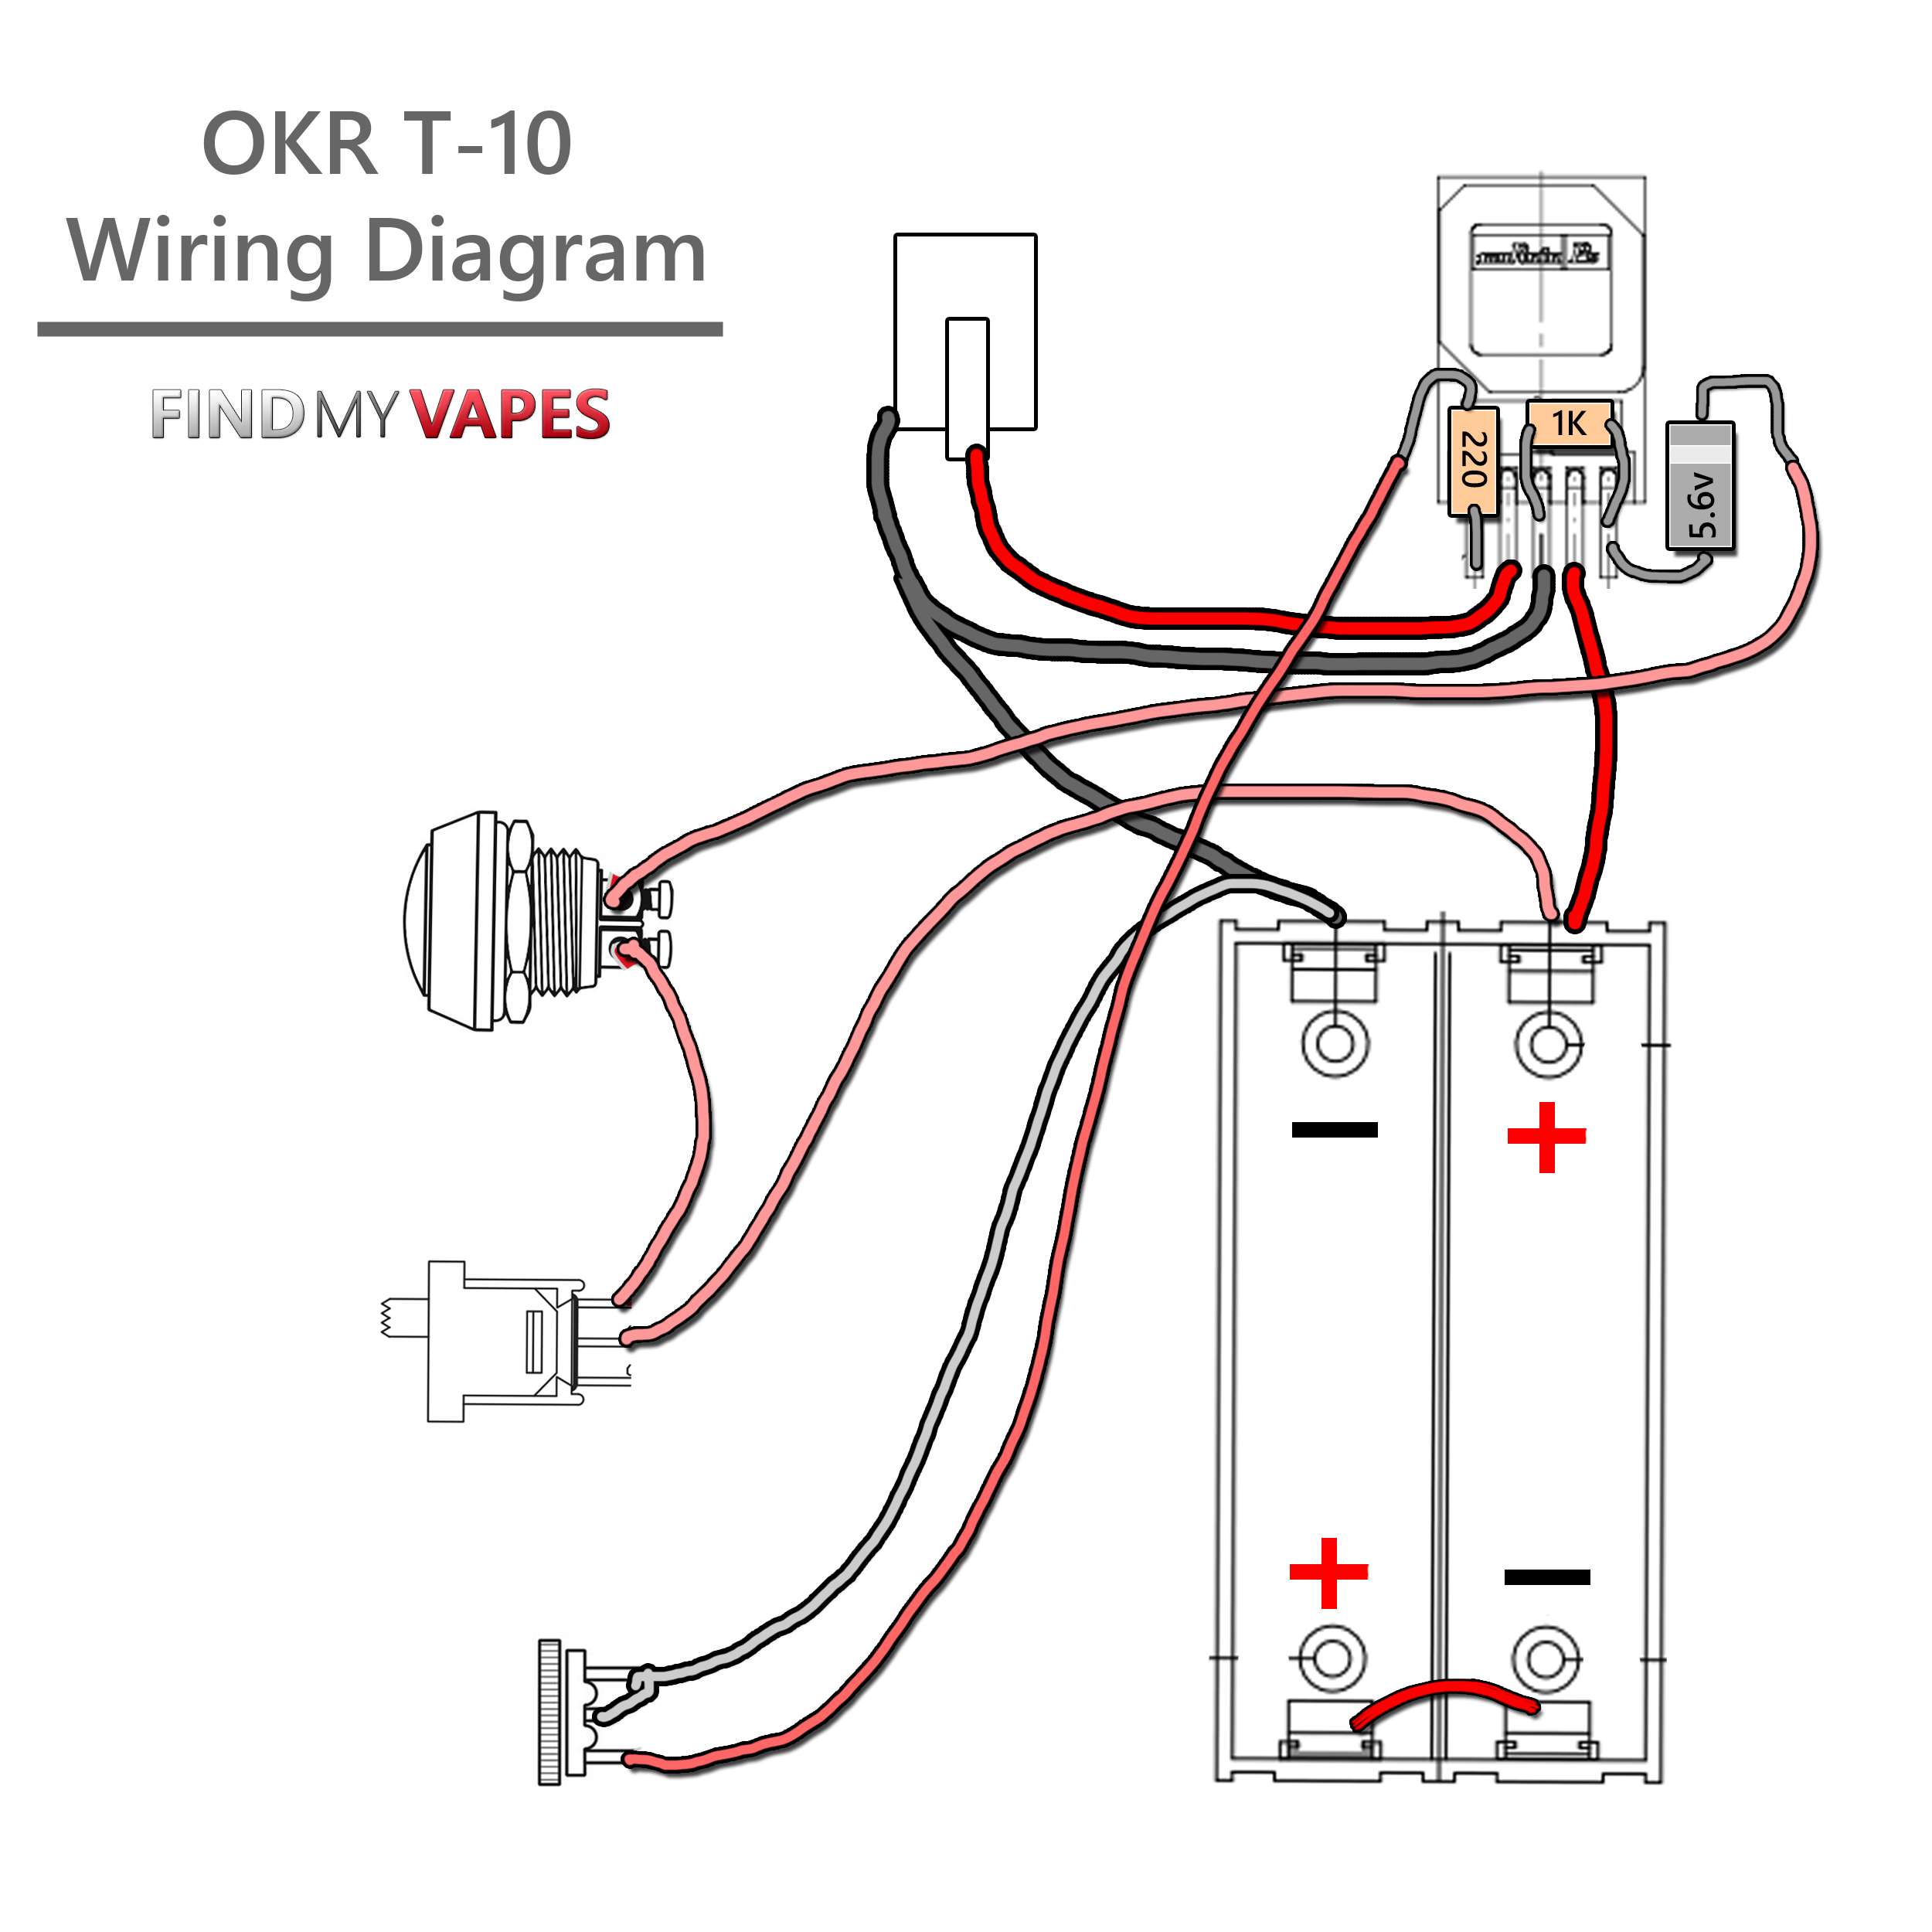 how a vaporizer works diagram wiring for house alarm system http findmyvapes to build an okr box mod